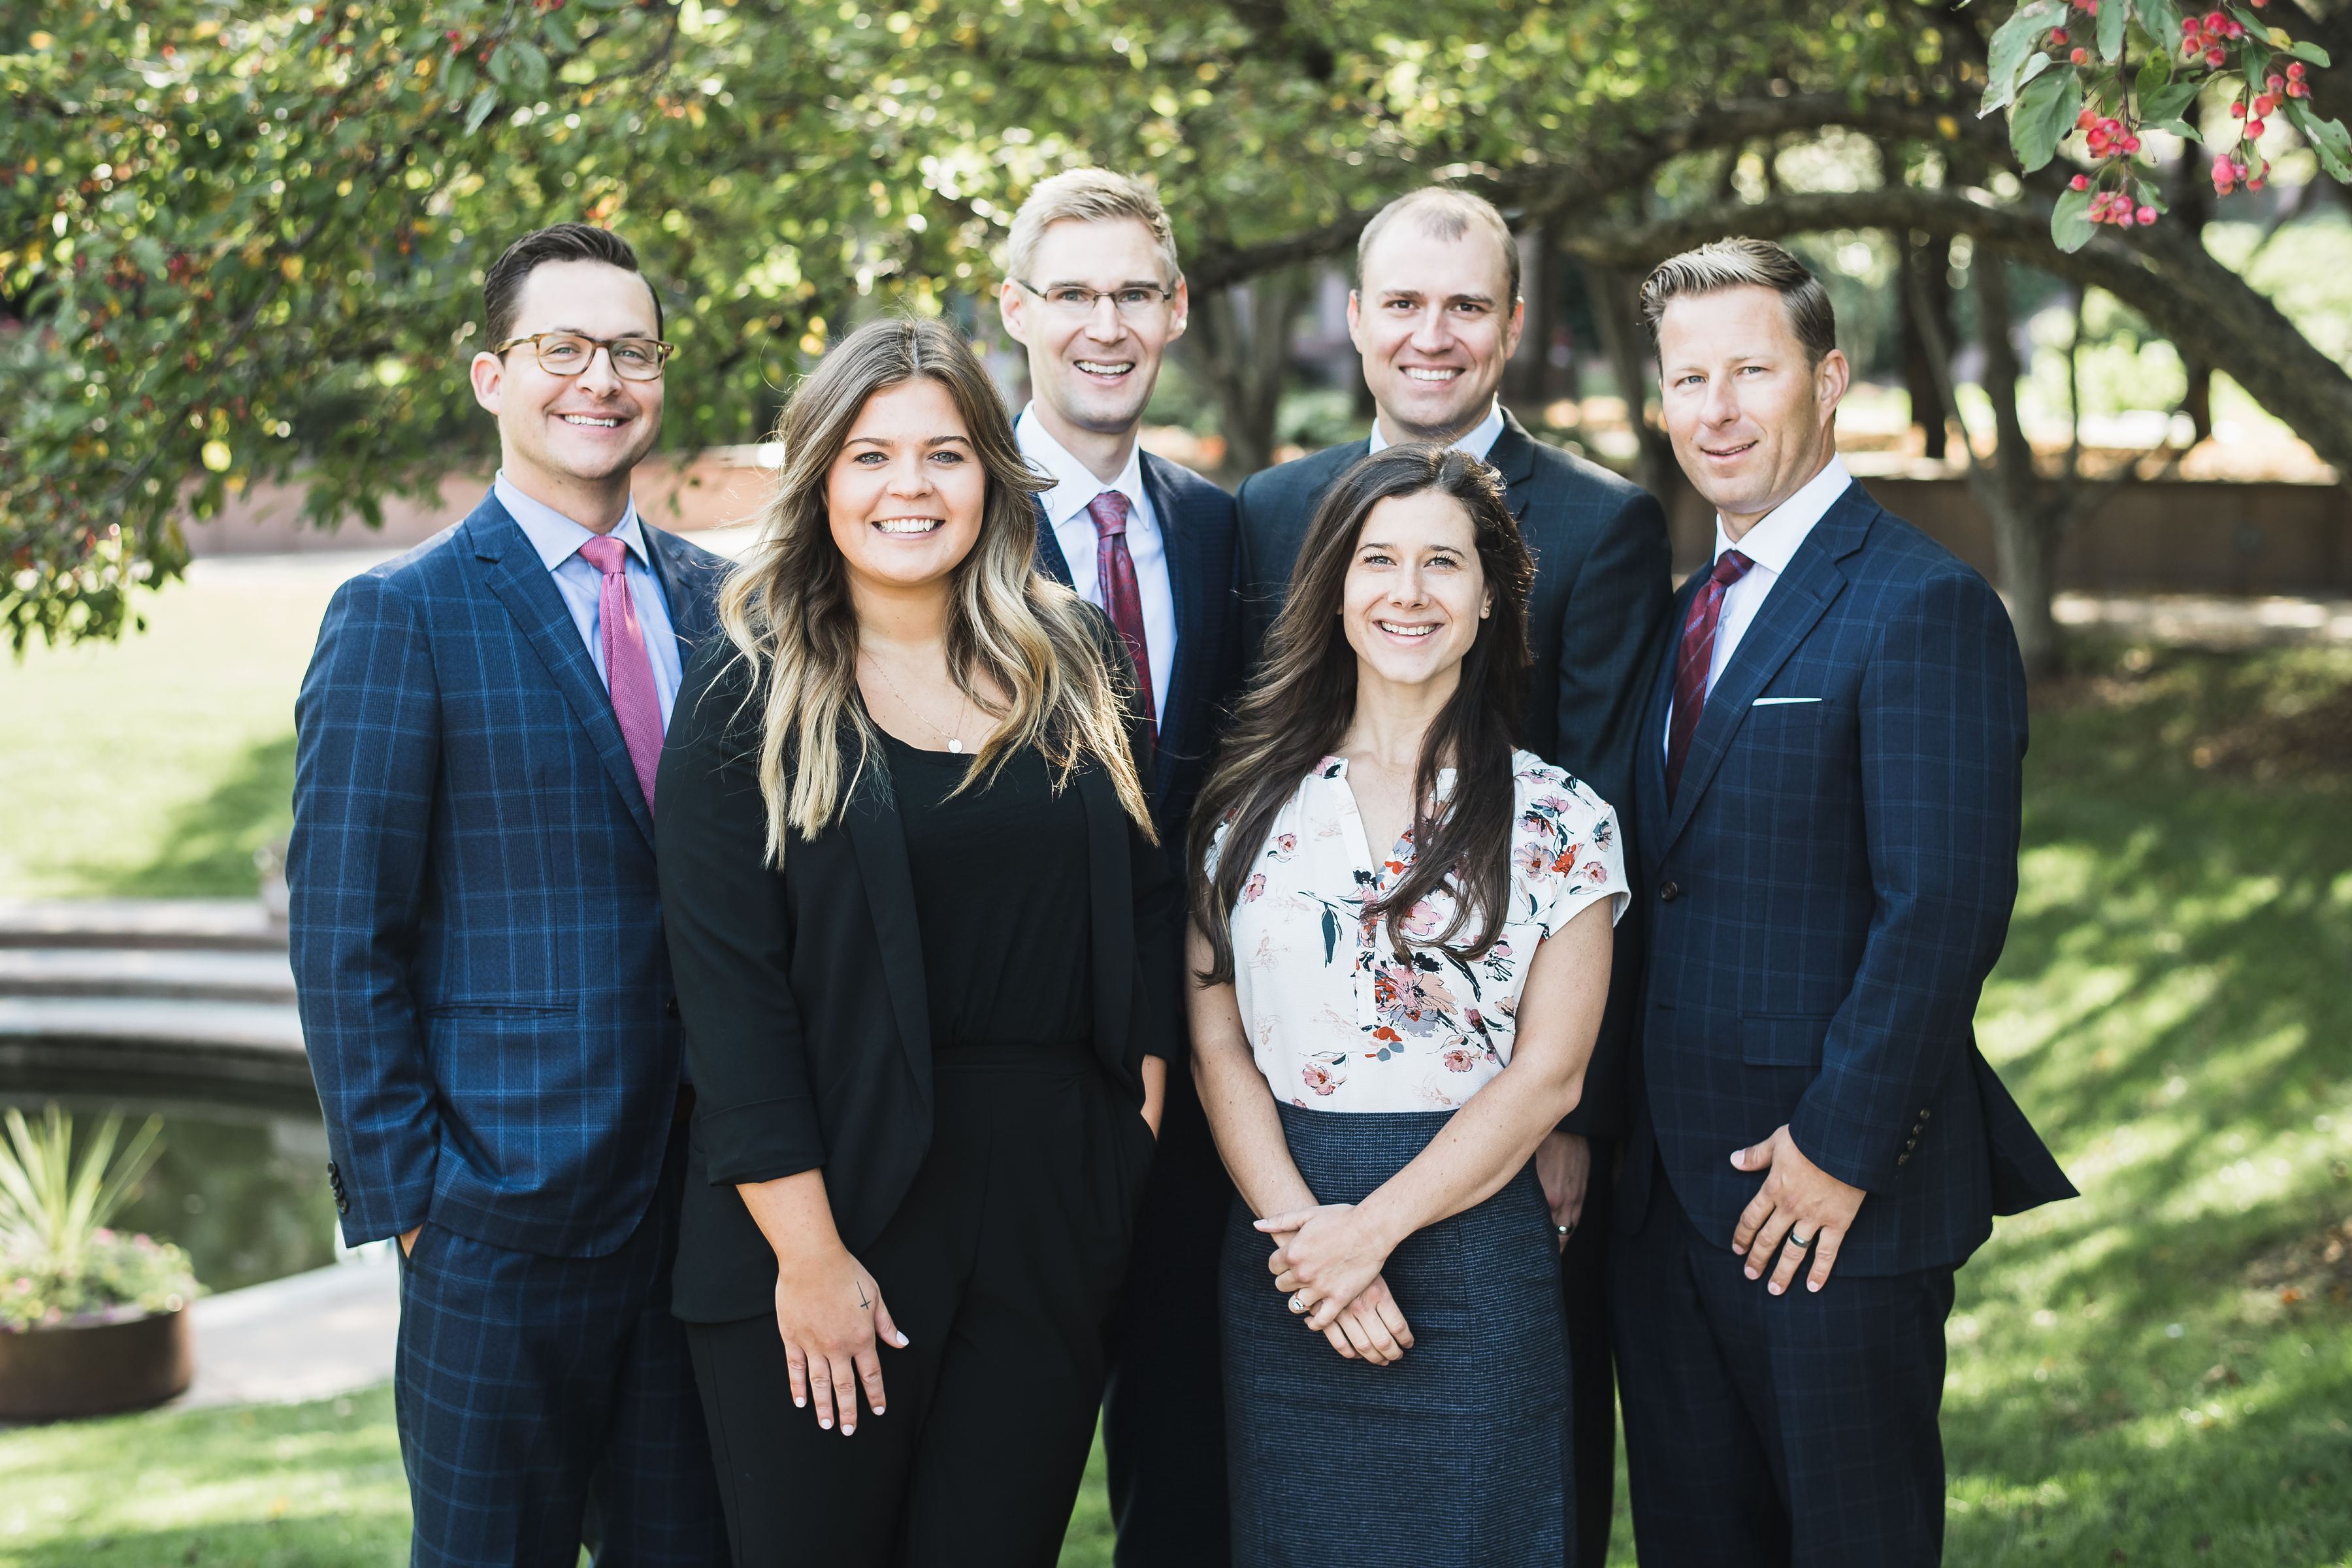 The Great Waters Financial Minnetonka Team Portrait